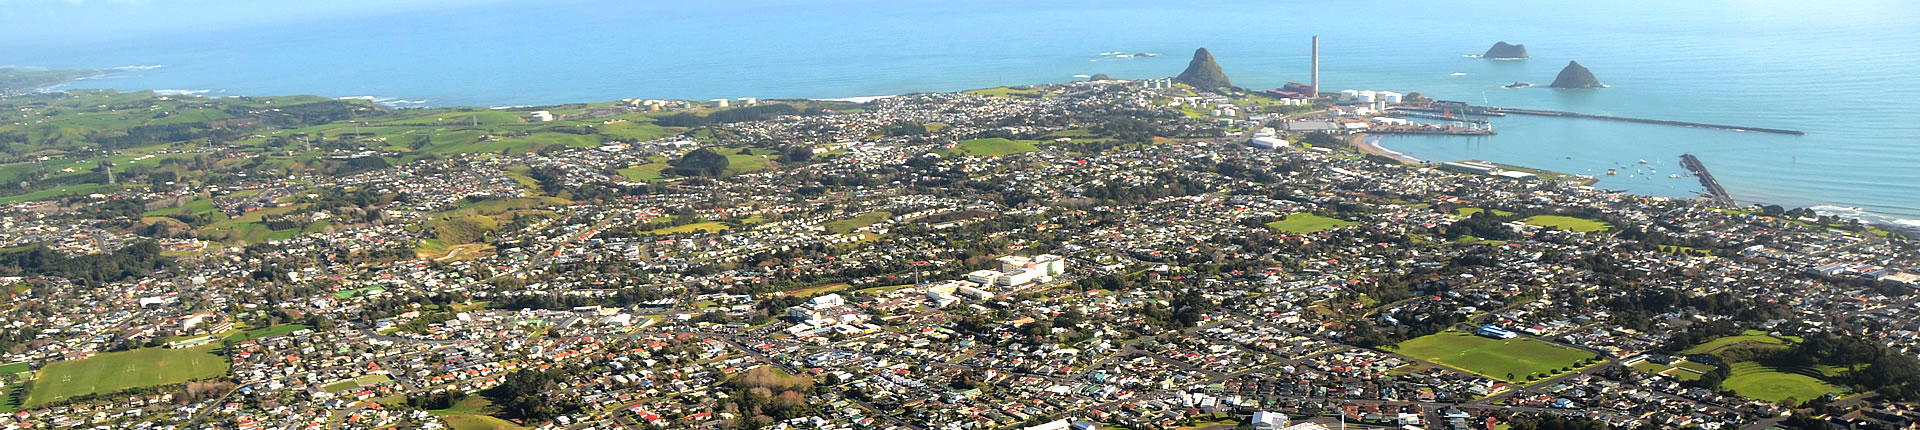 Realty 365 - Buy and Selling Houses and Farms in Taranaki